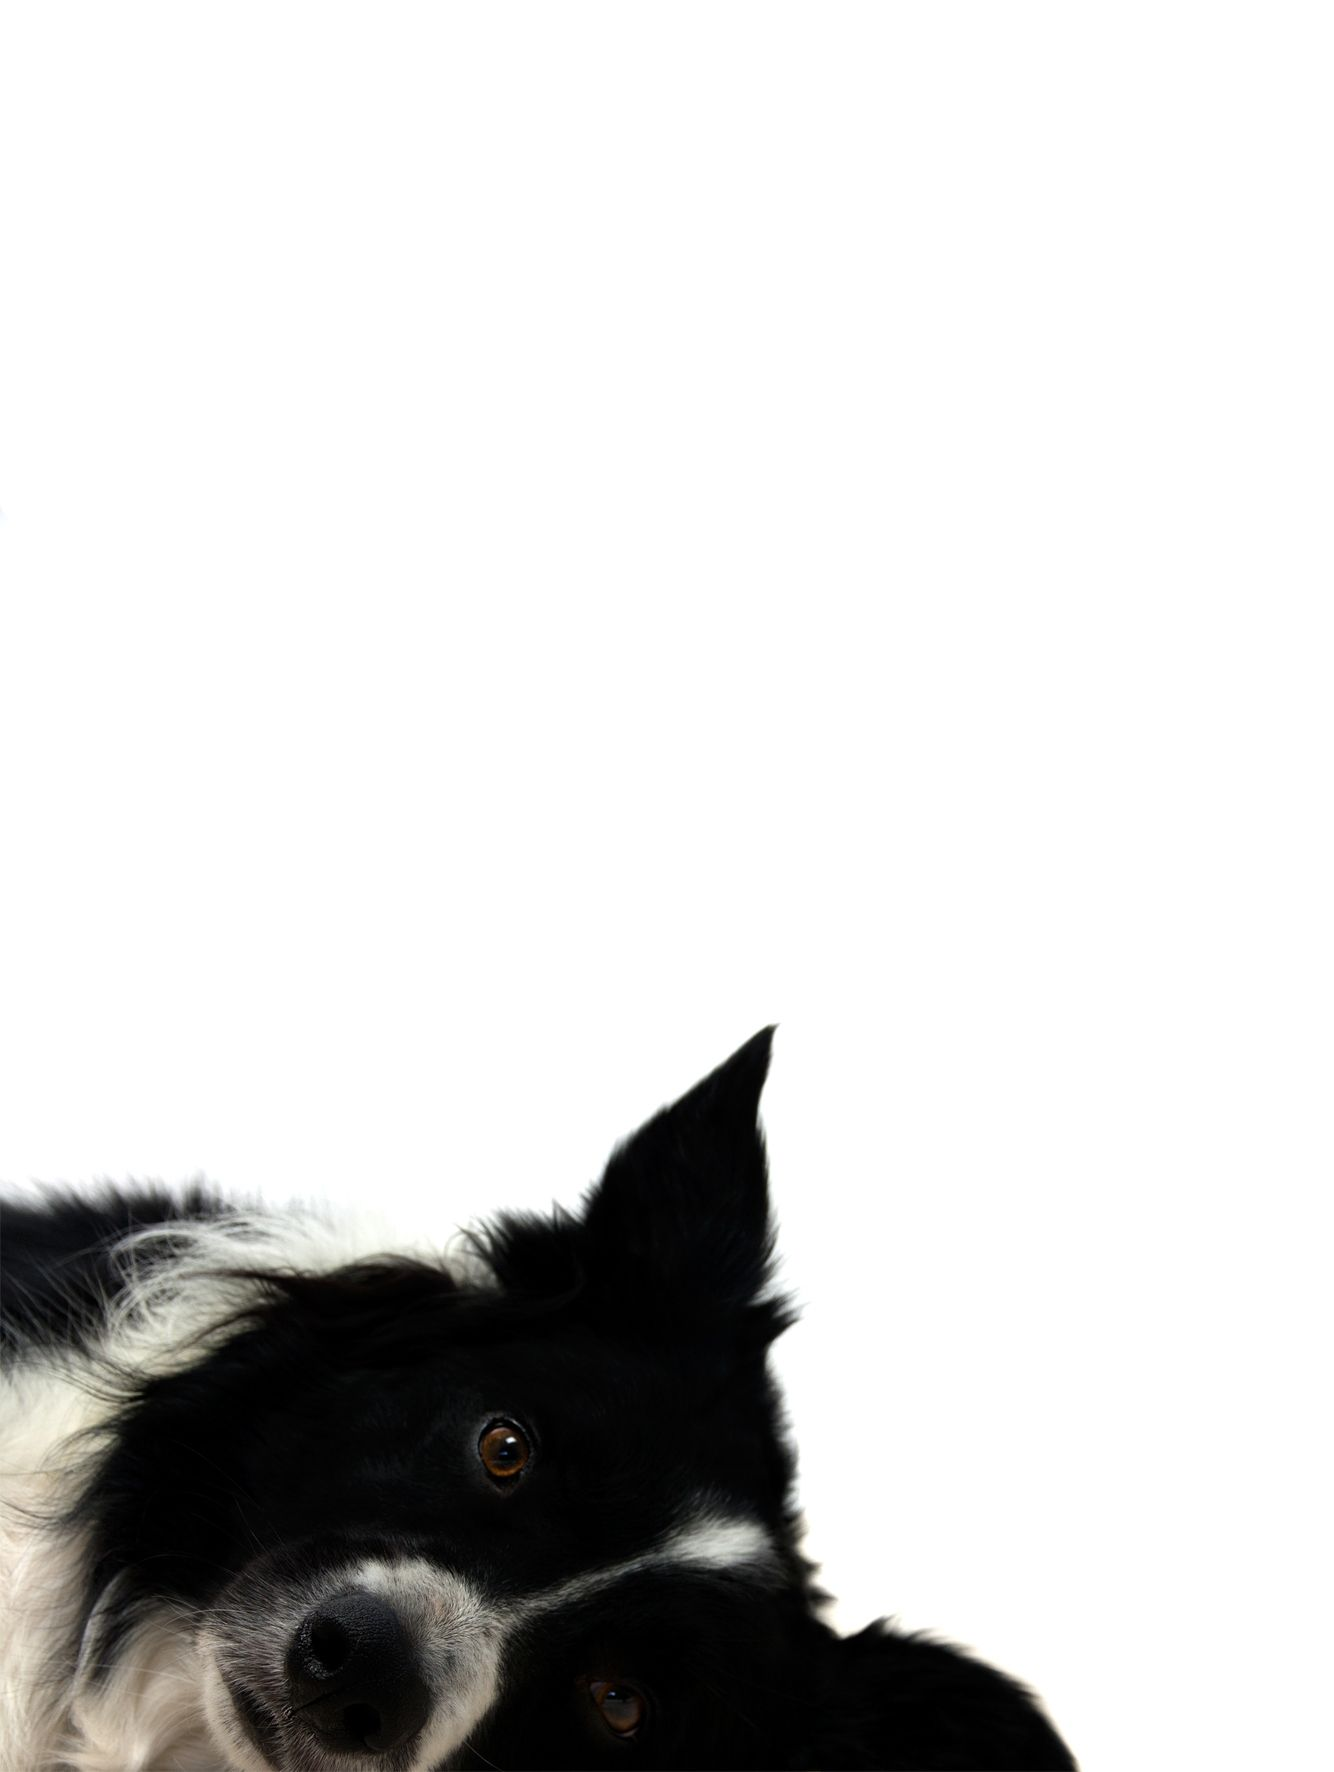 Pin by denise symes on animals pinterest animal dog and pup